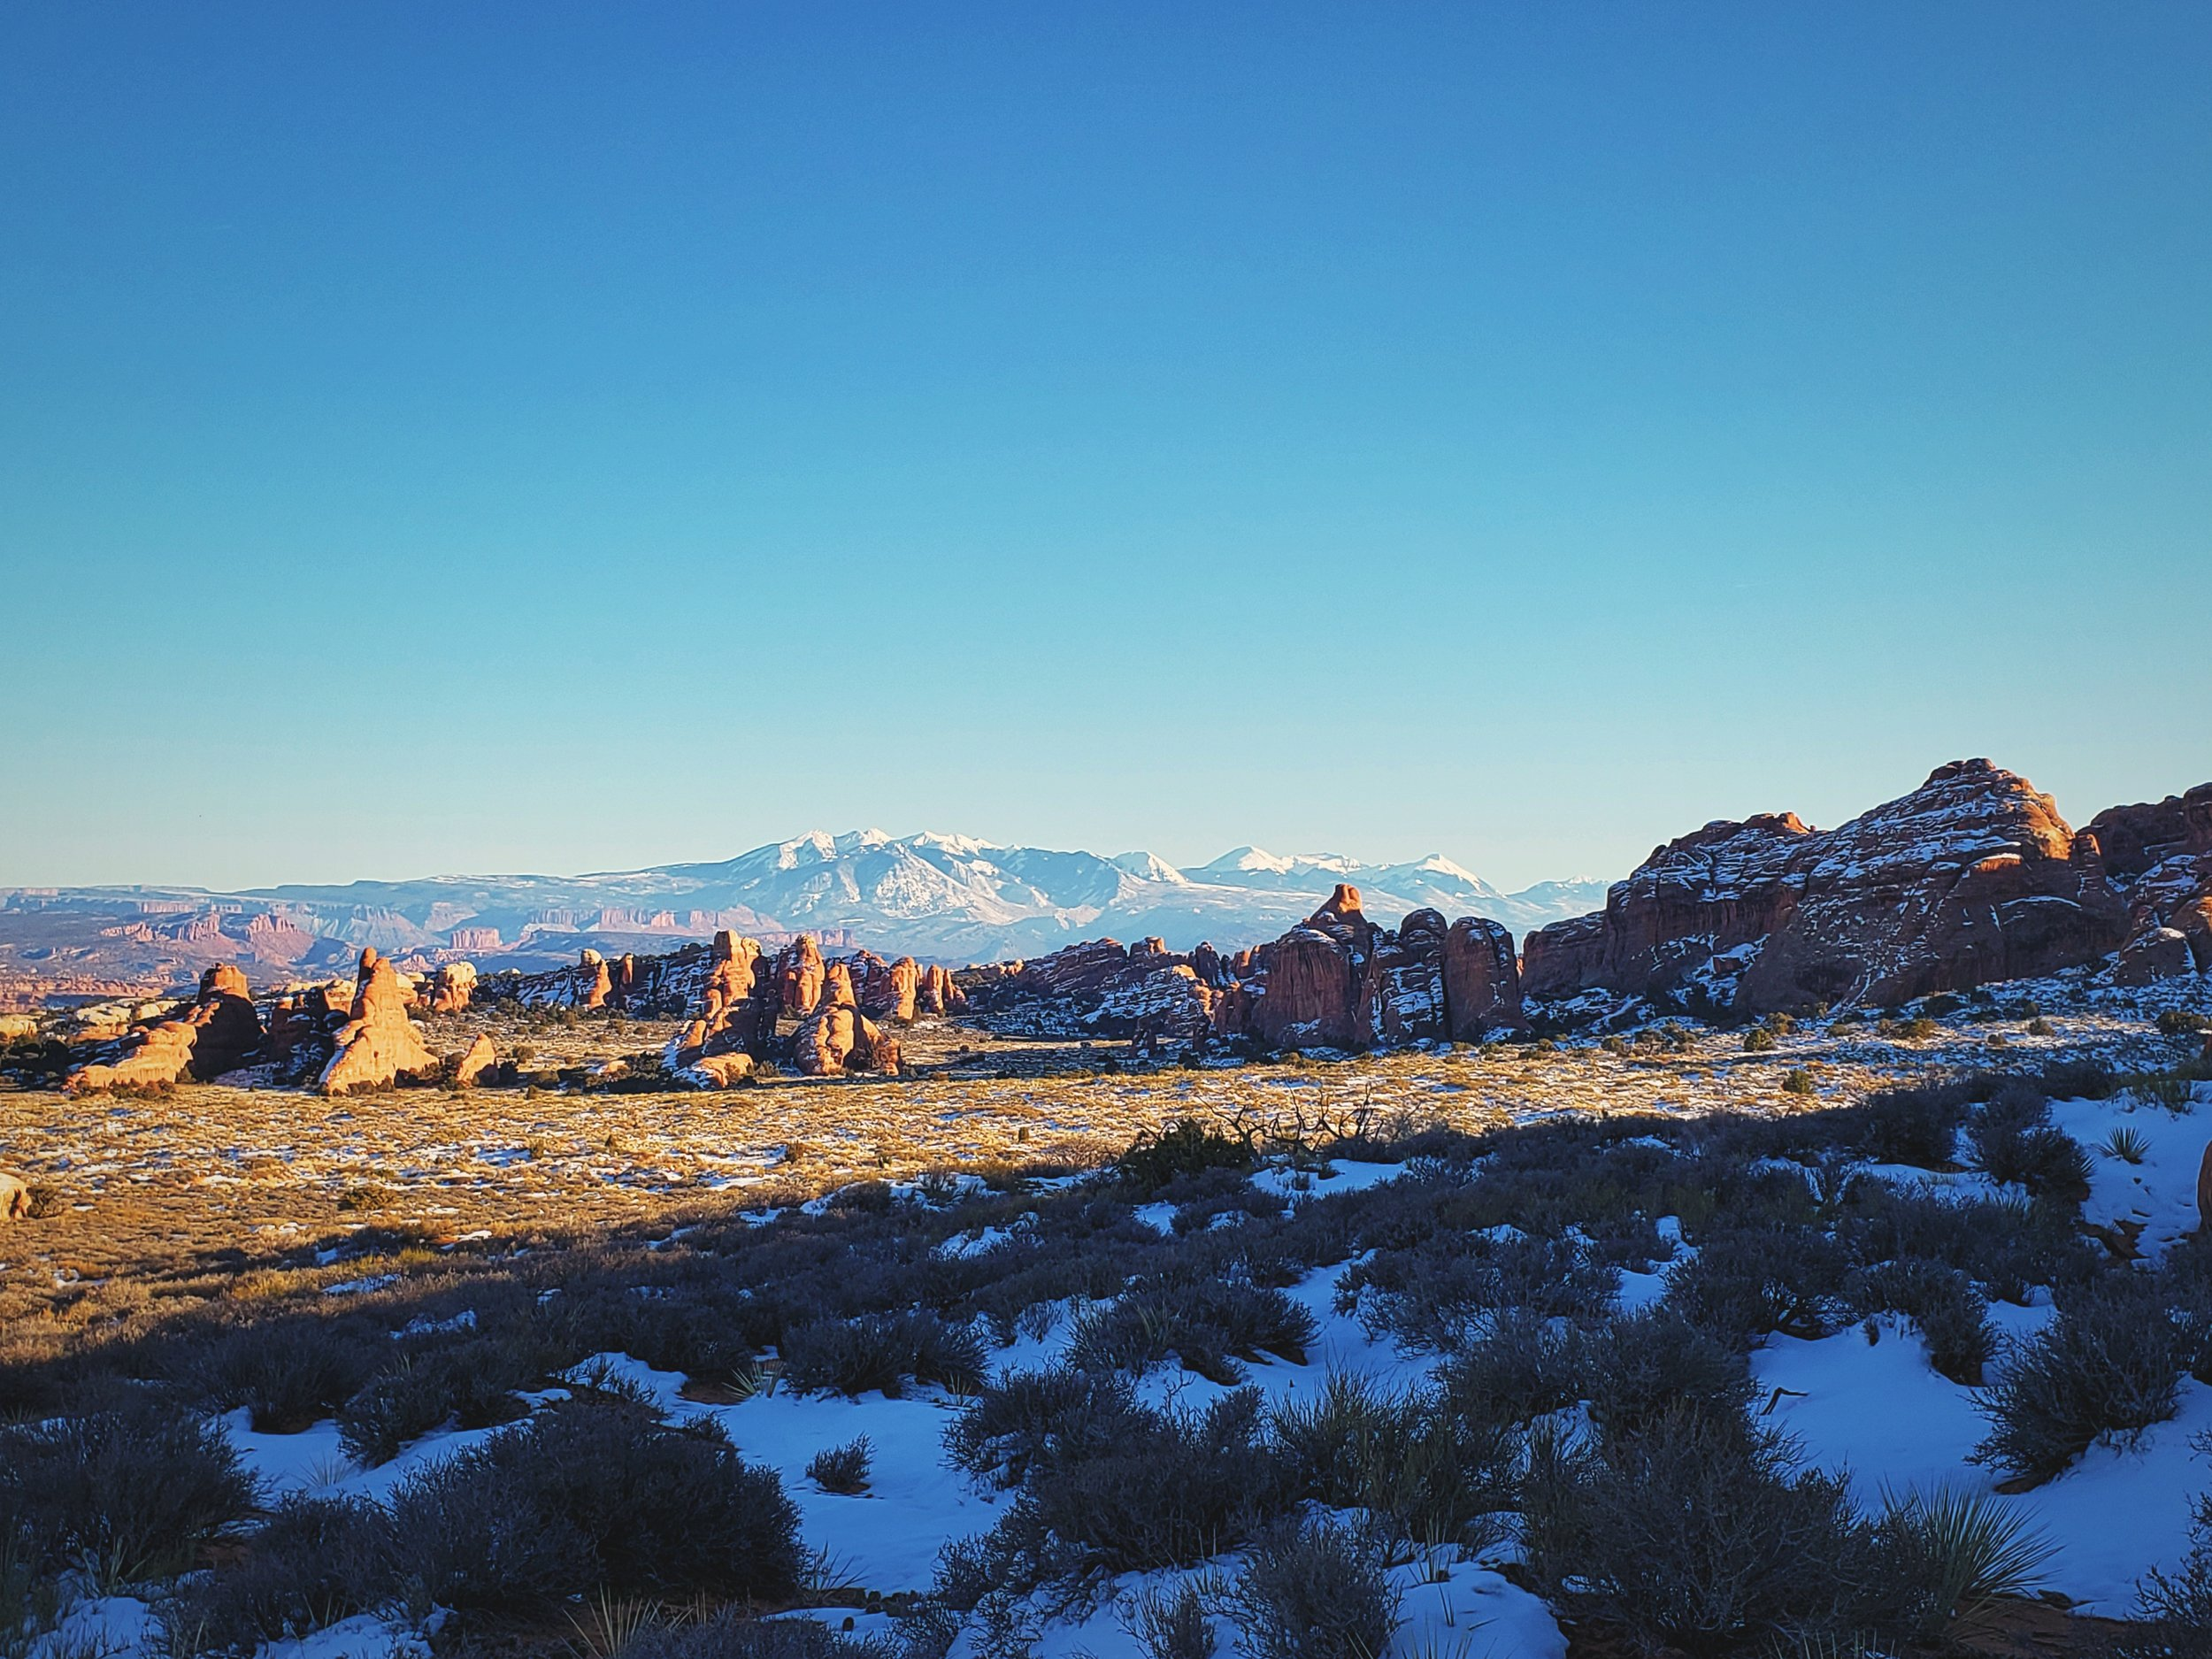 Fins of sandstone rising from the desert with the La Sal Mountains as a backdrop.